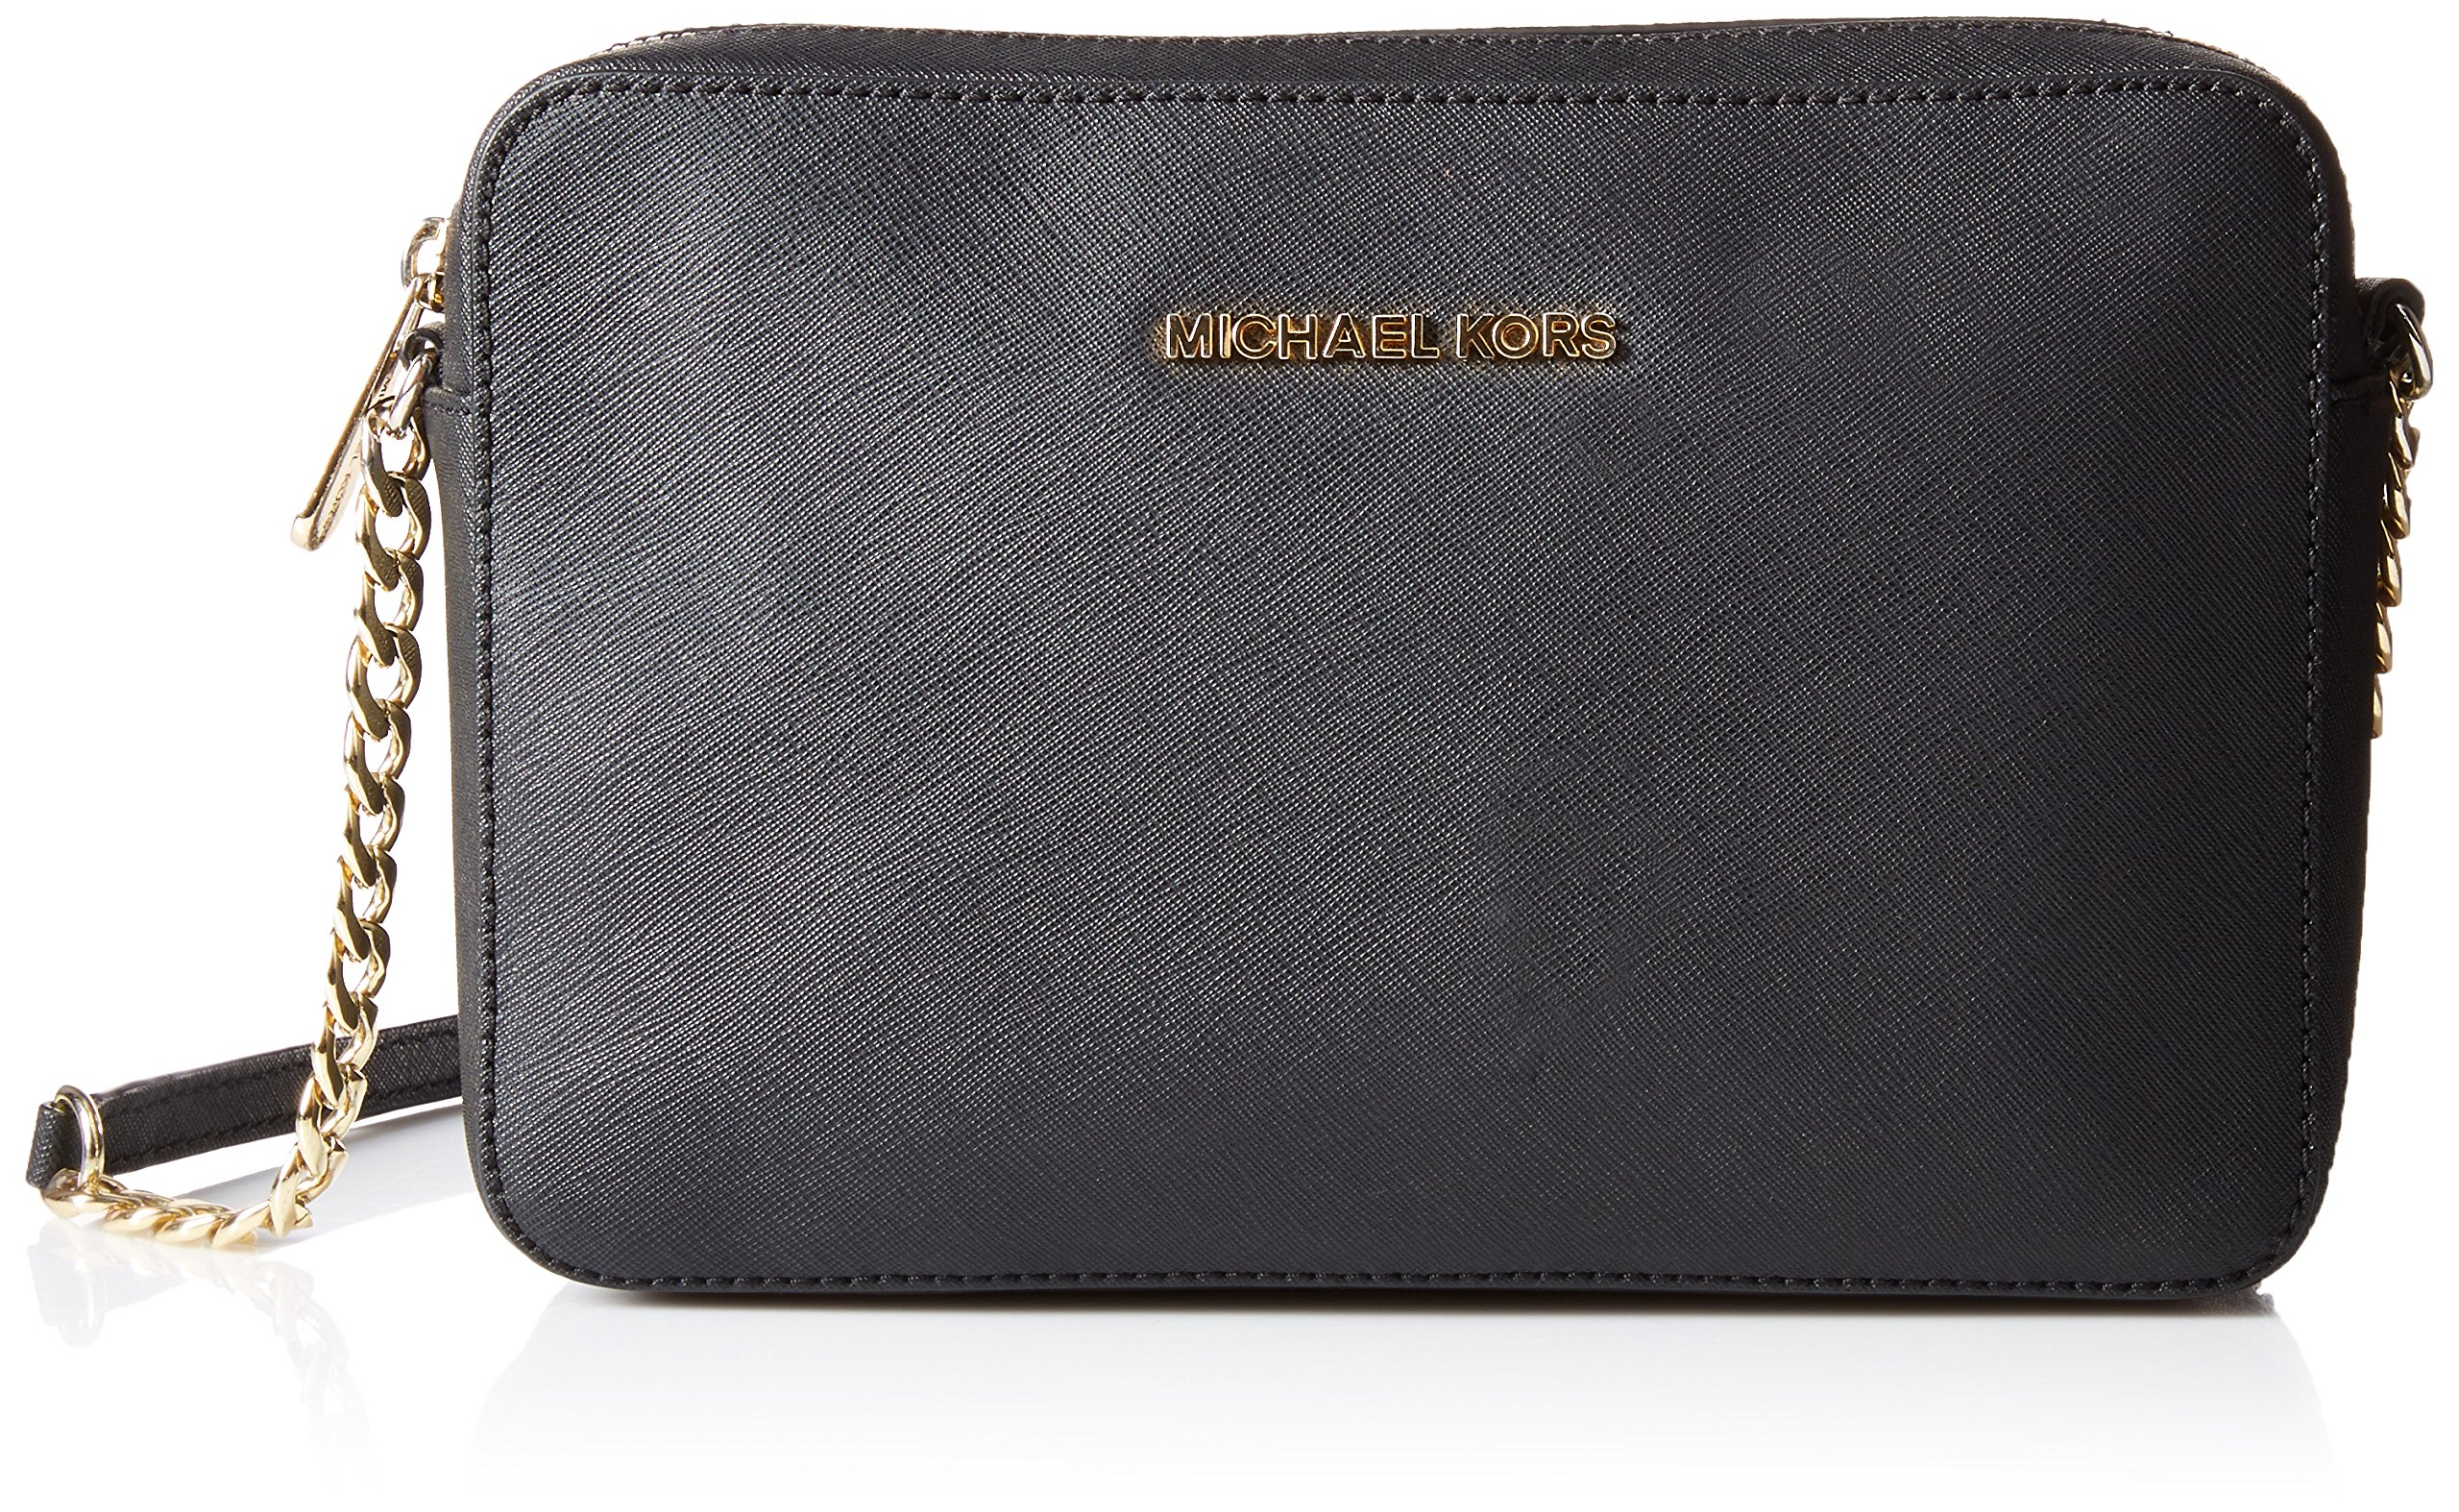 Michael Kors  Women's Jet Set Crossbody Leather Bag, Black, Large by MICHAEL Michael Kors